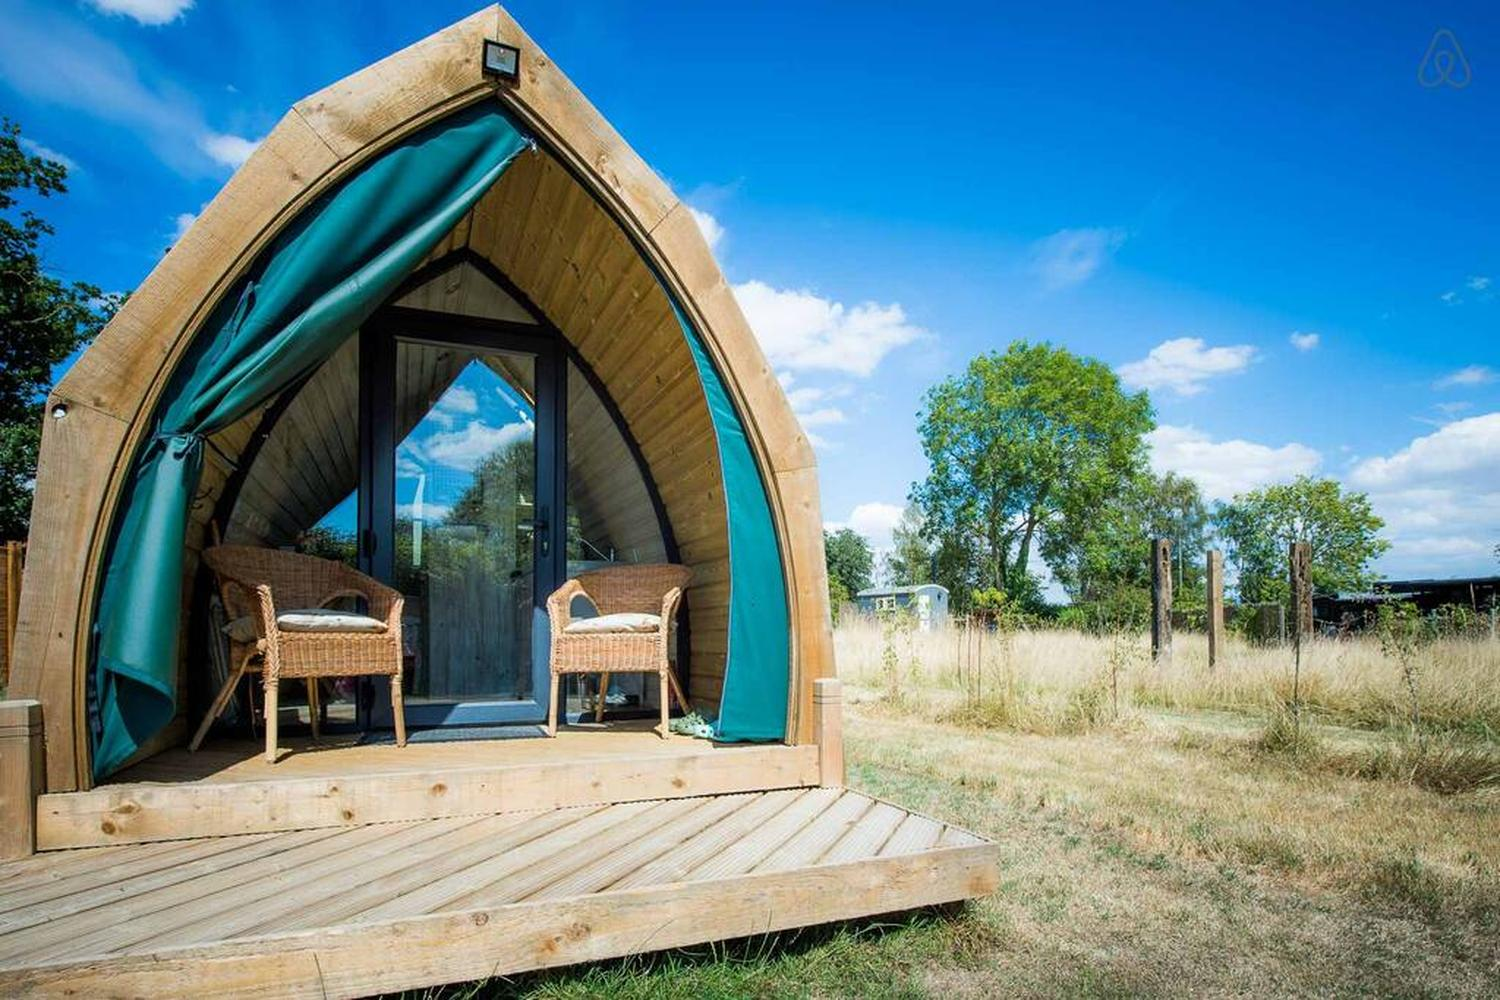 freddie-glamping-pod-on-decking-with-chairs-in-field-on-sunny-day